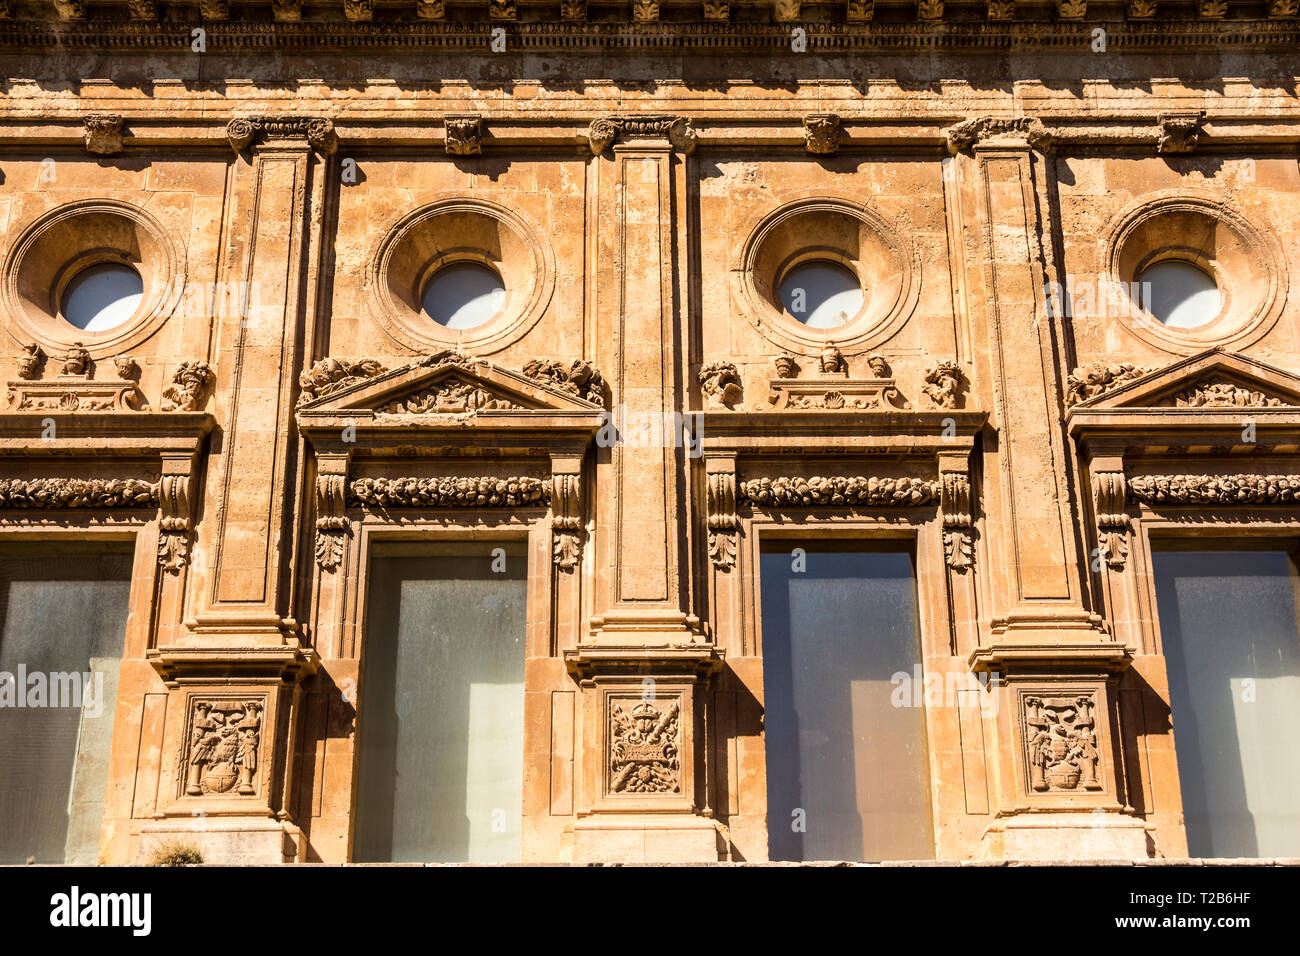 The facade of a building in the city of Granada, Spain, showing a architectual influence by the Moors. - Stock Image